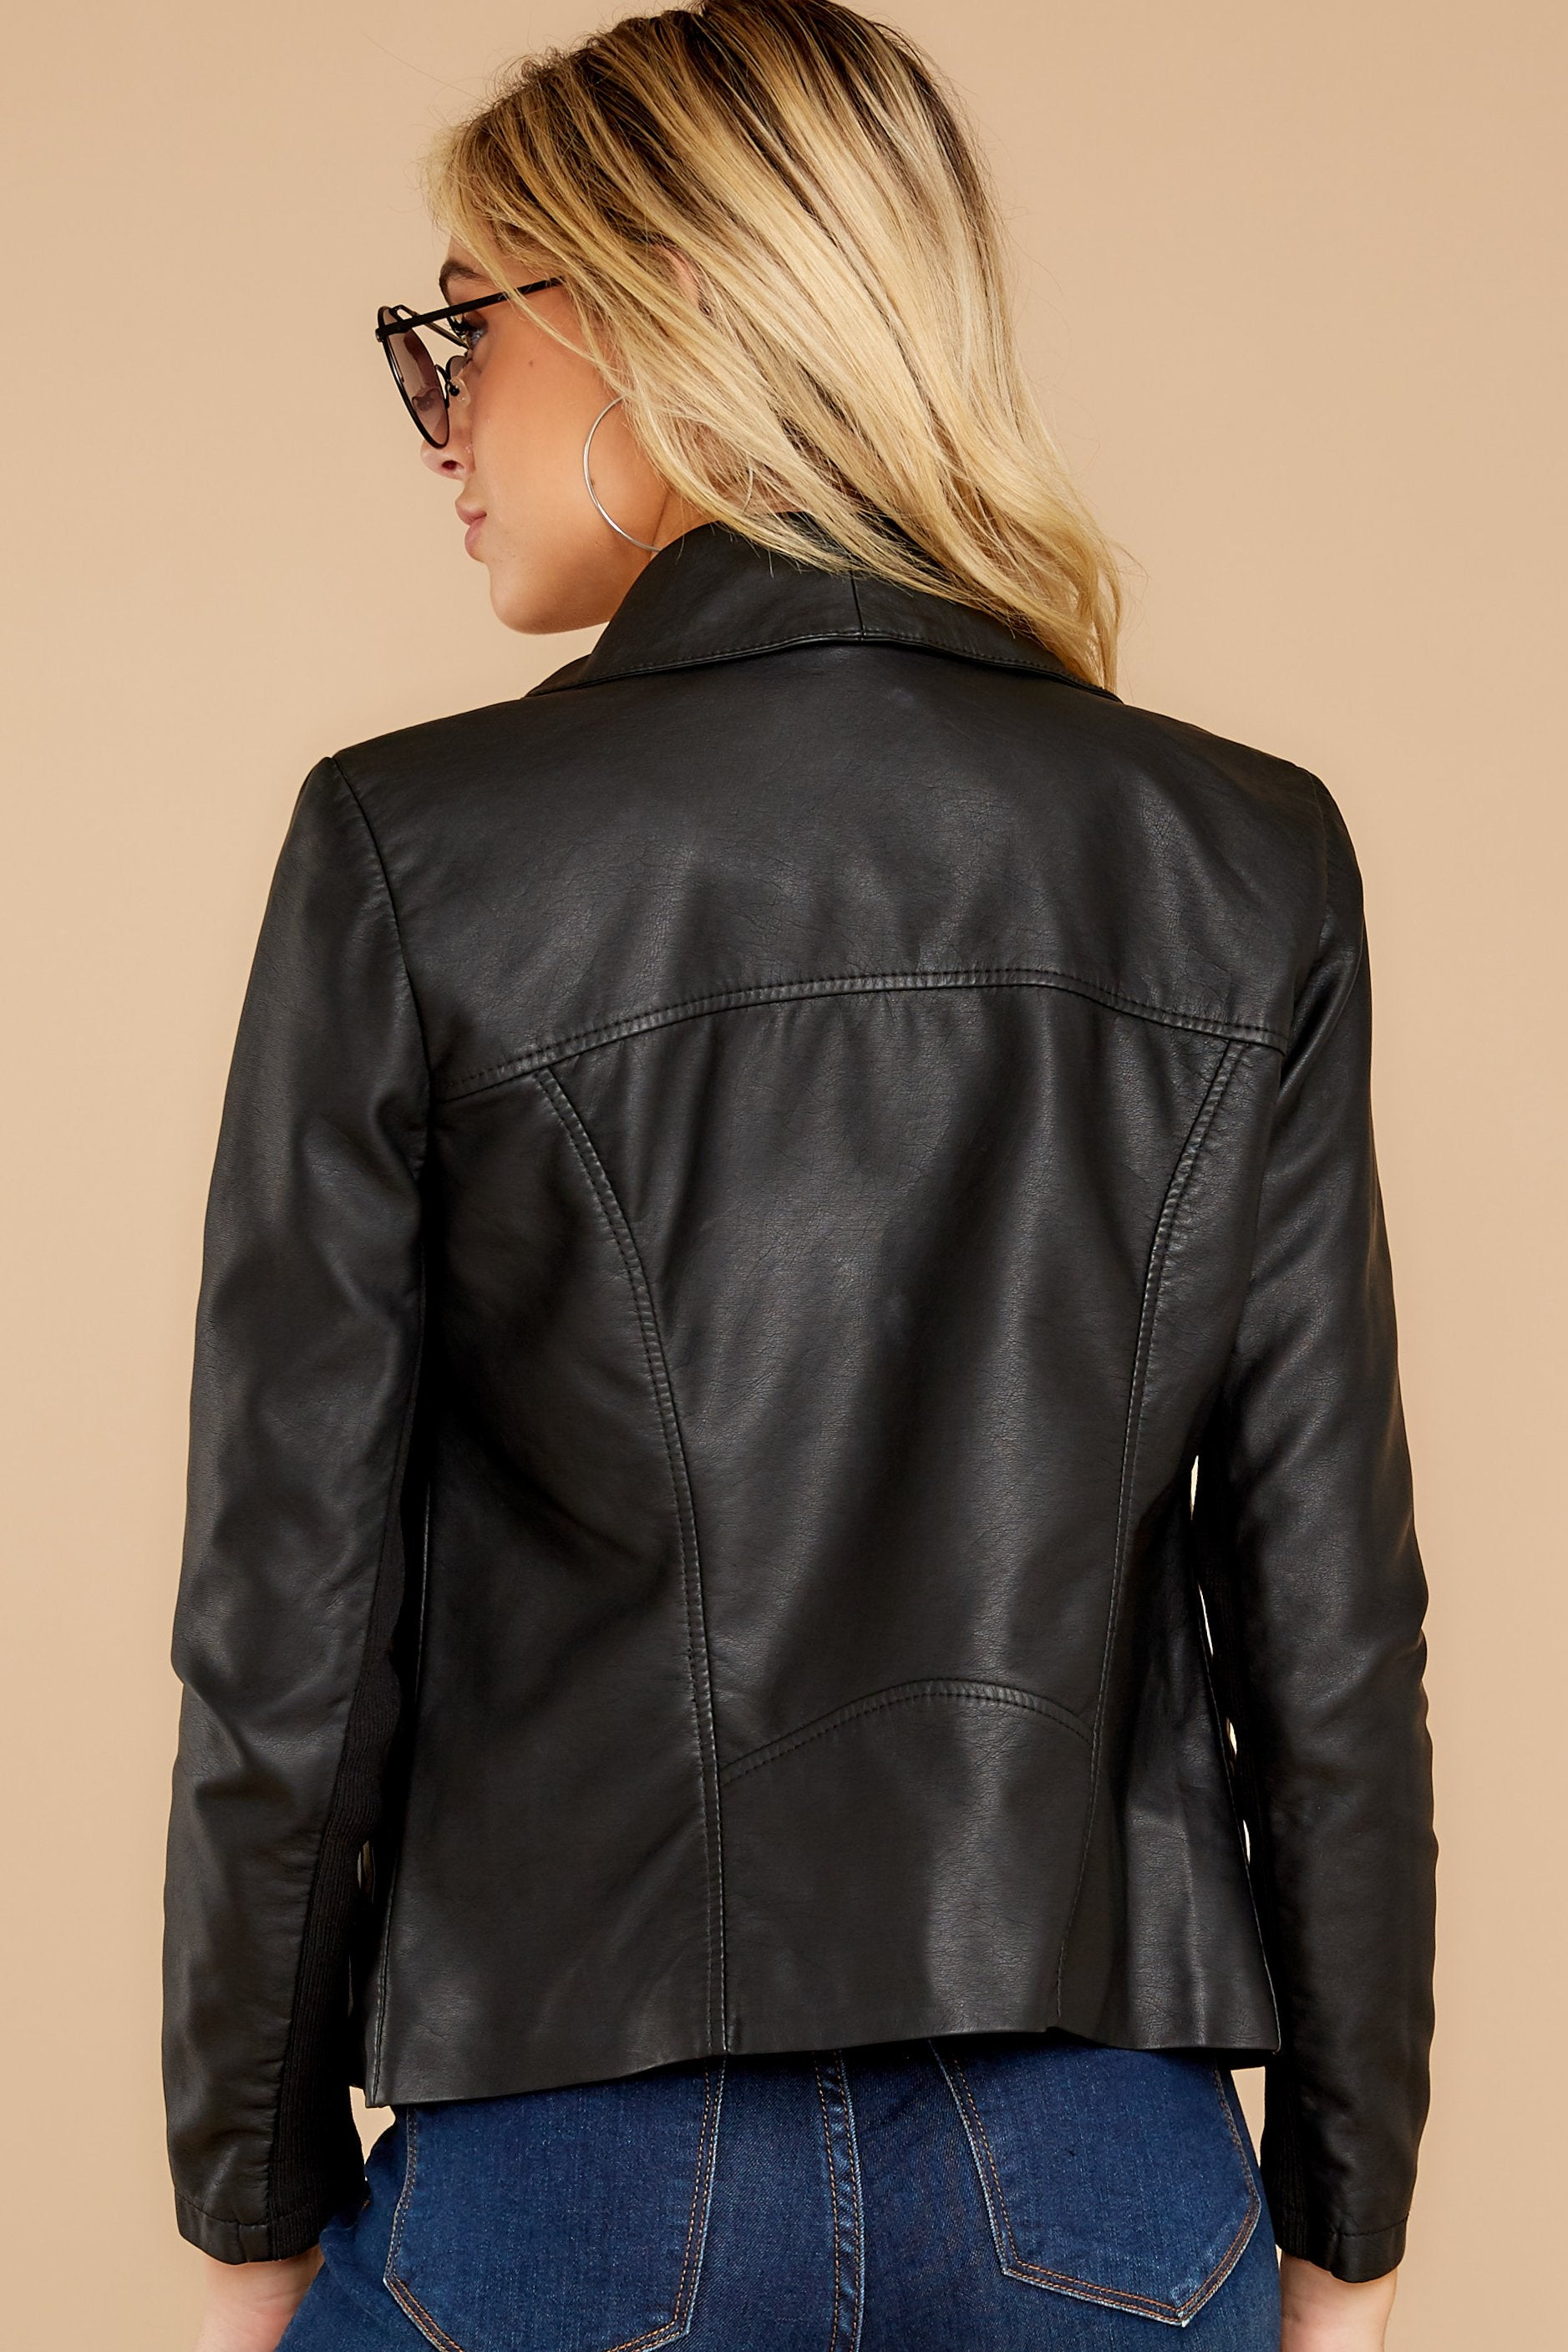 9 Throwback And Smile Black Vegan Leather Jacket at reddressboutique.com